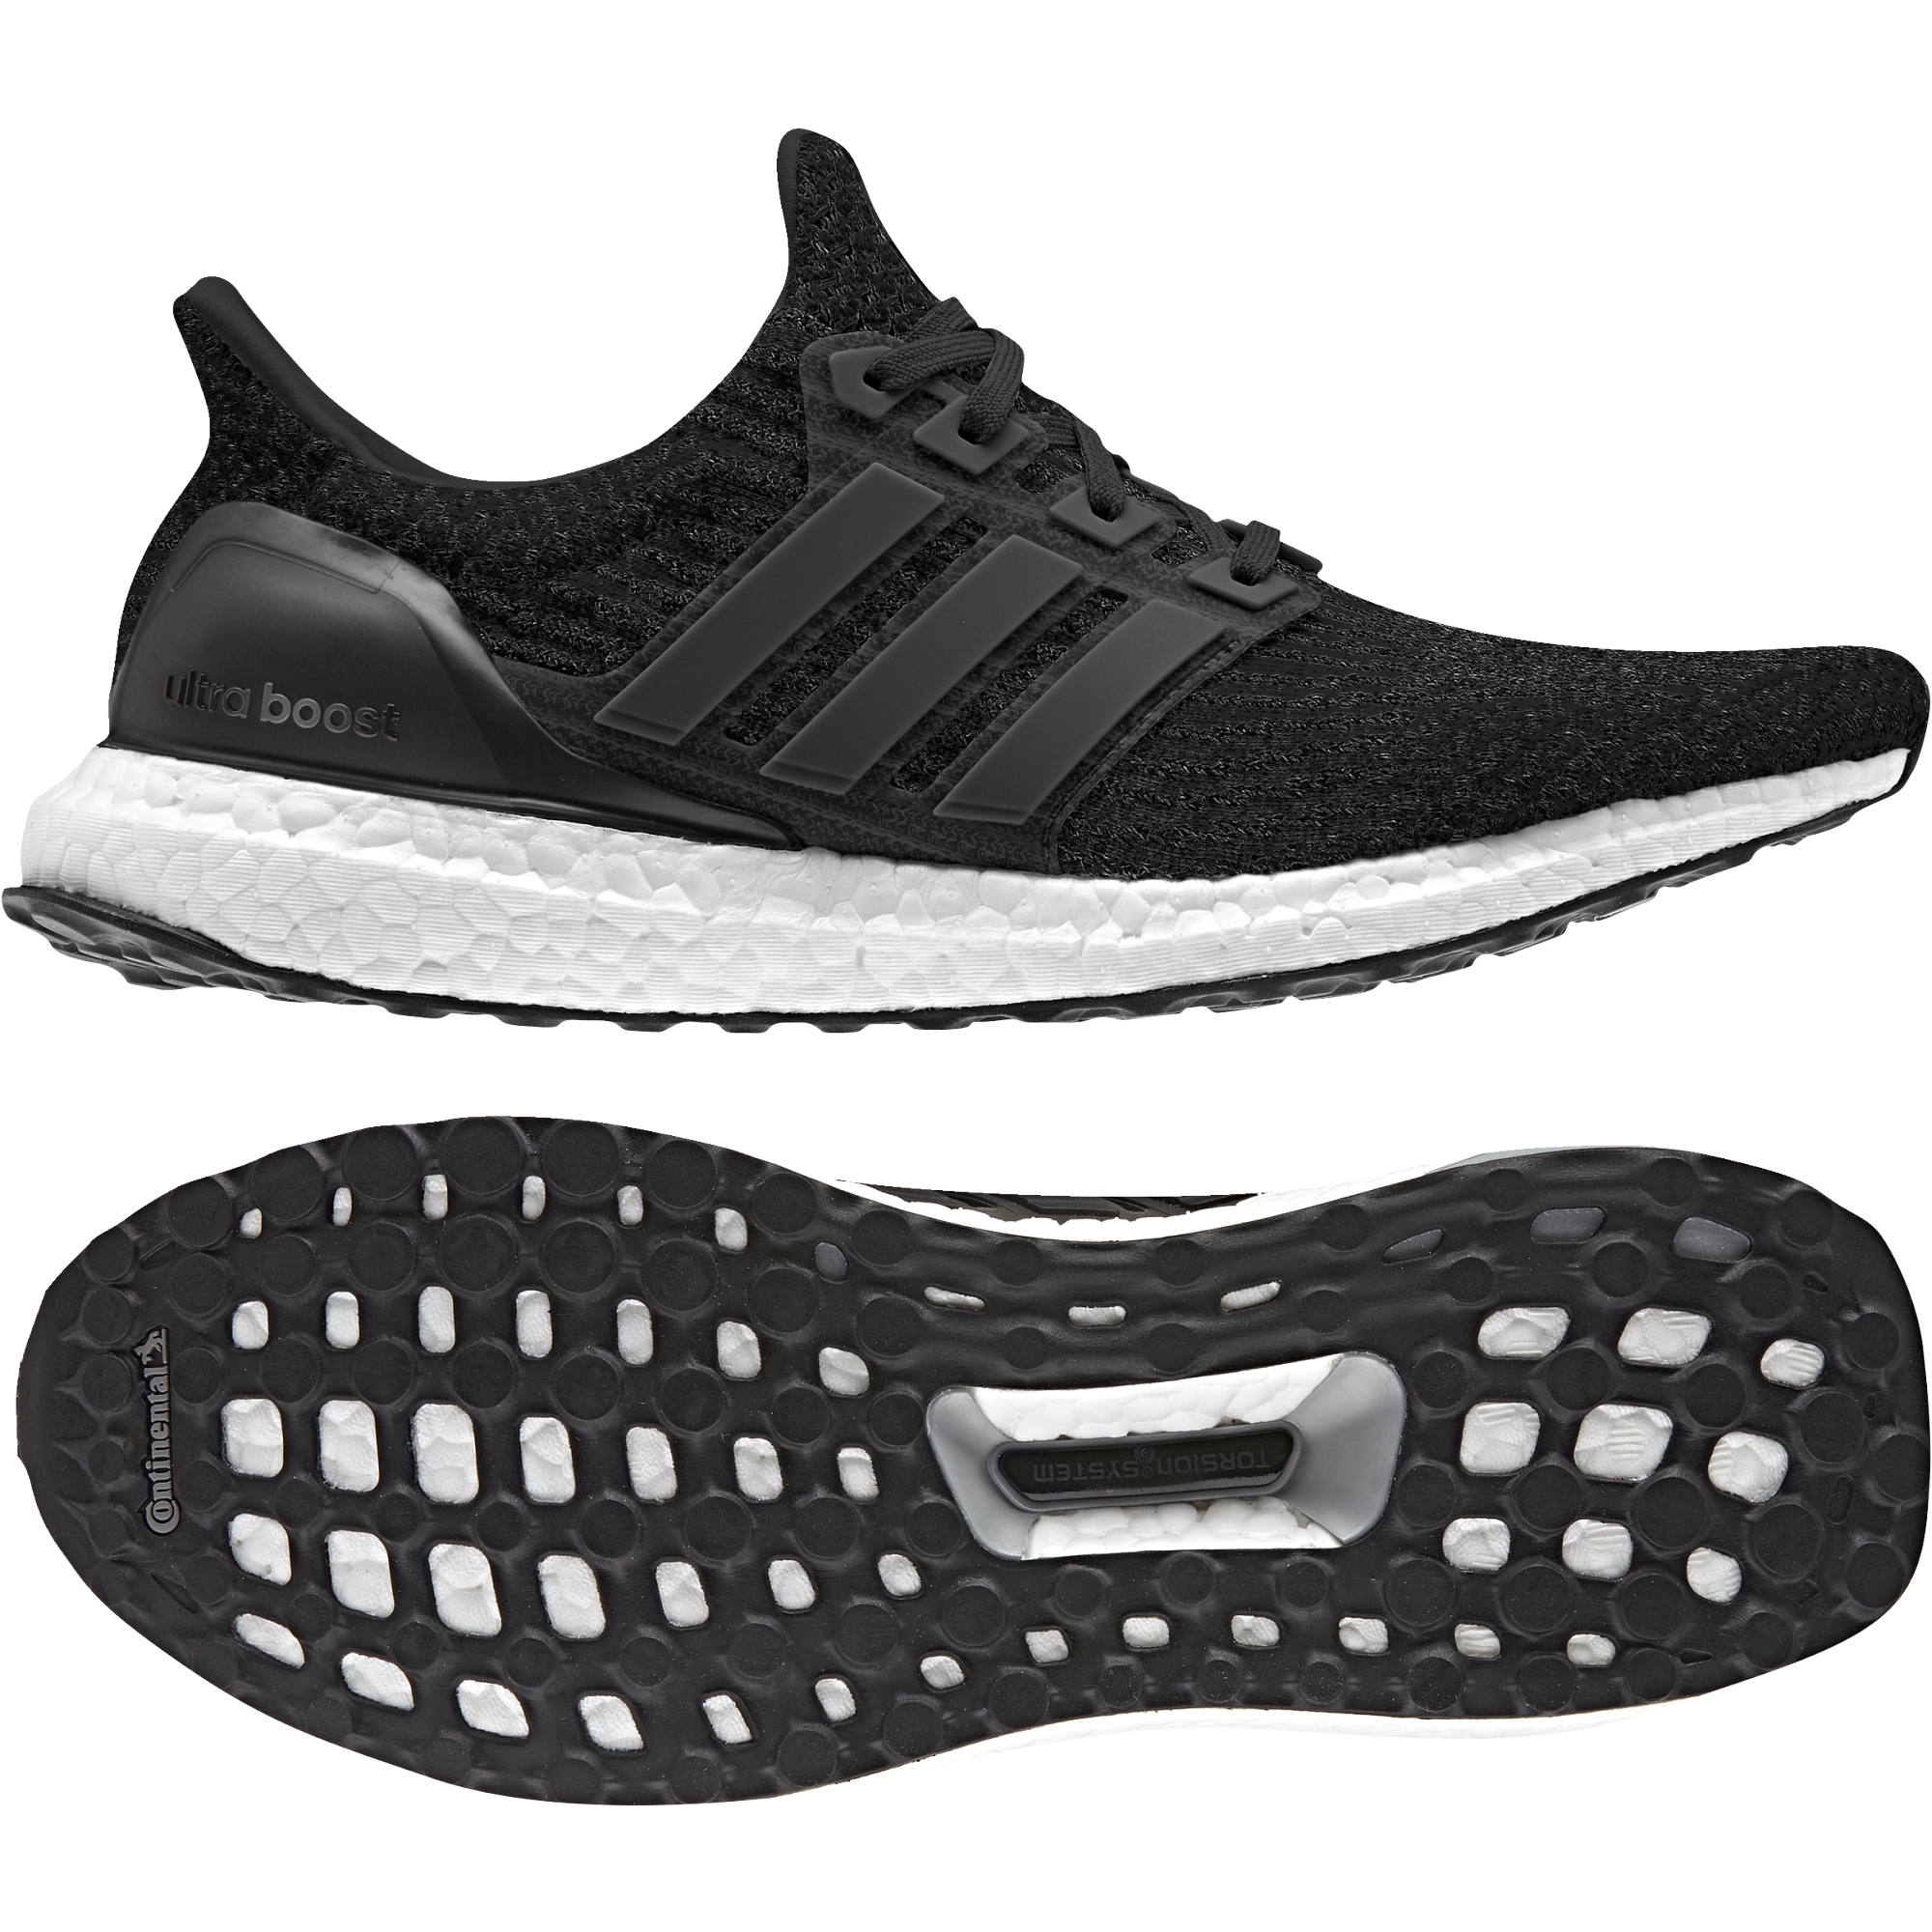 26f5d5887 Home   Shoes   Road   Adidas Men s Ultra Boost.  ba8842 ftw photo standard transparent